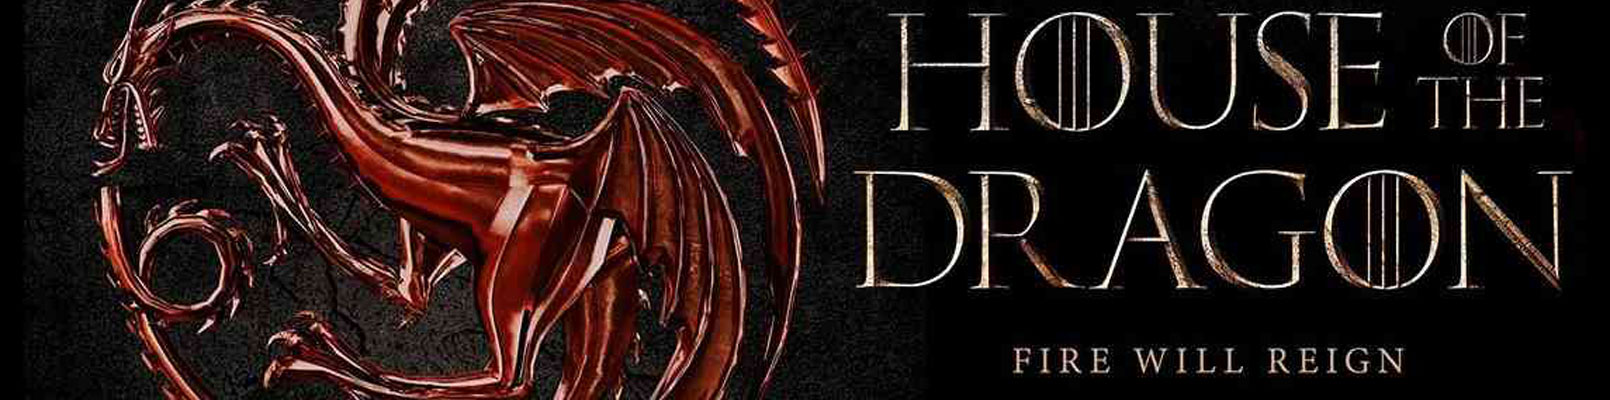 seriale 2020 house of the dragon game of thrones